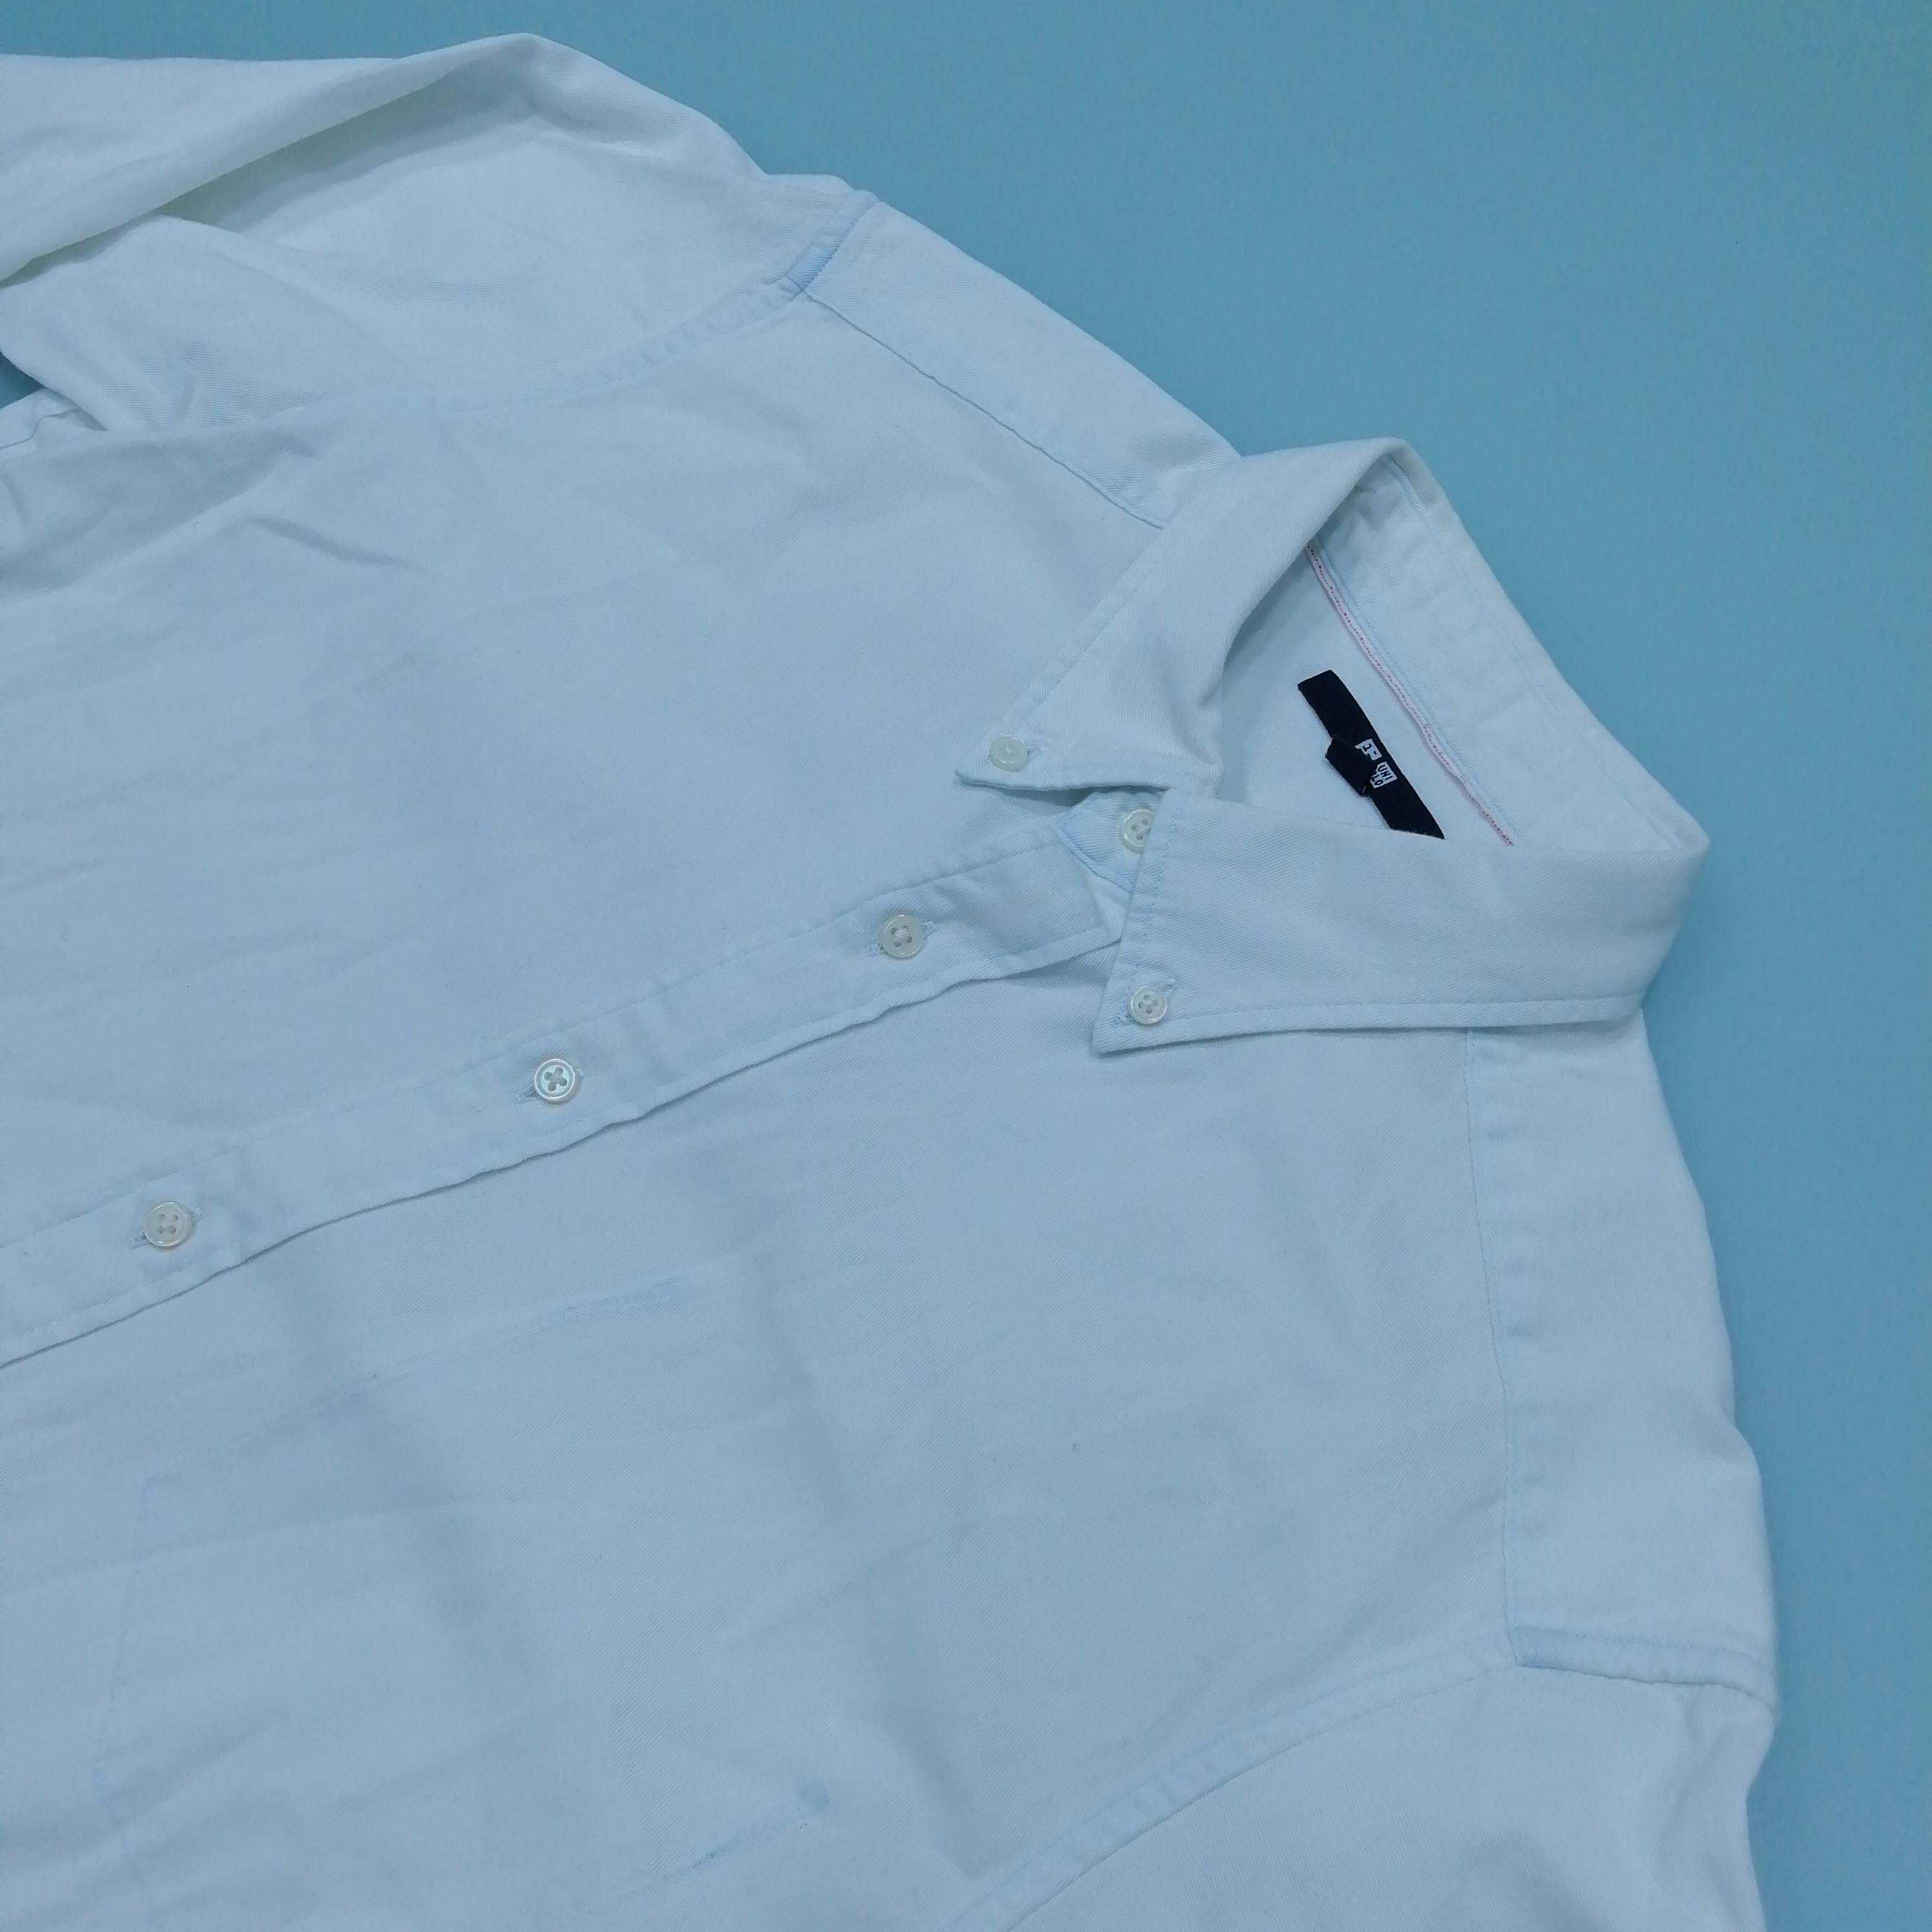 Uniqlo Men's Long Sleeve Shirt S Colour: White